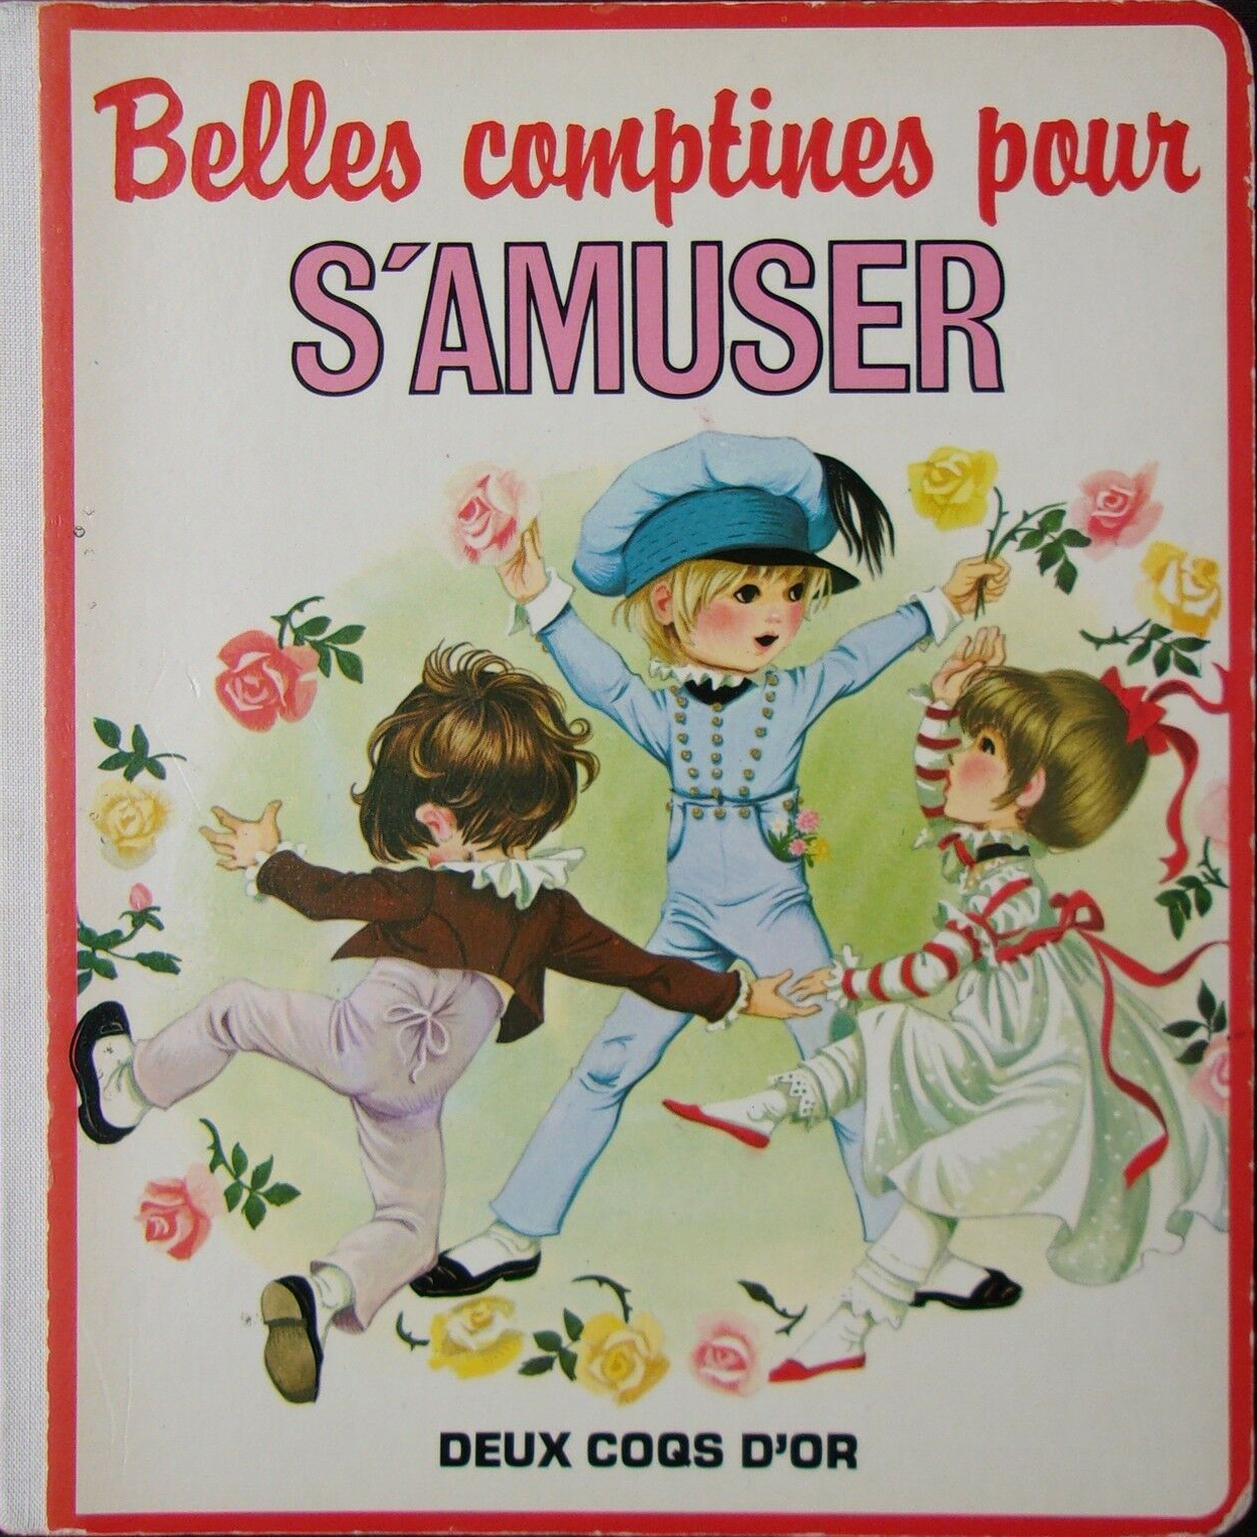 GJT French Belles comptines pour samuser little tots book of nursery rhymes deux coqs dor 1981